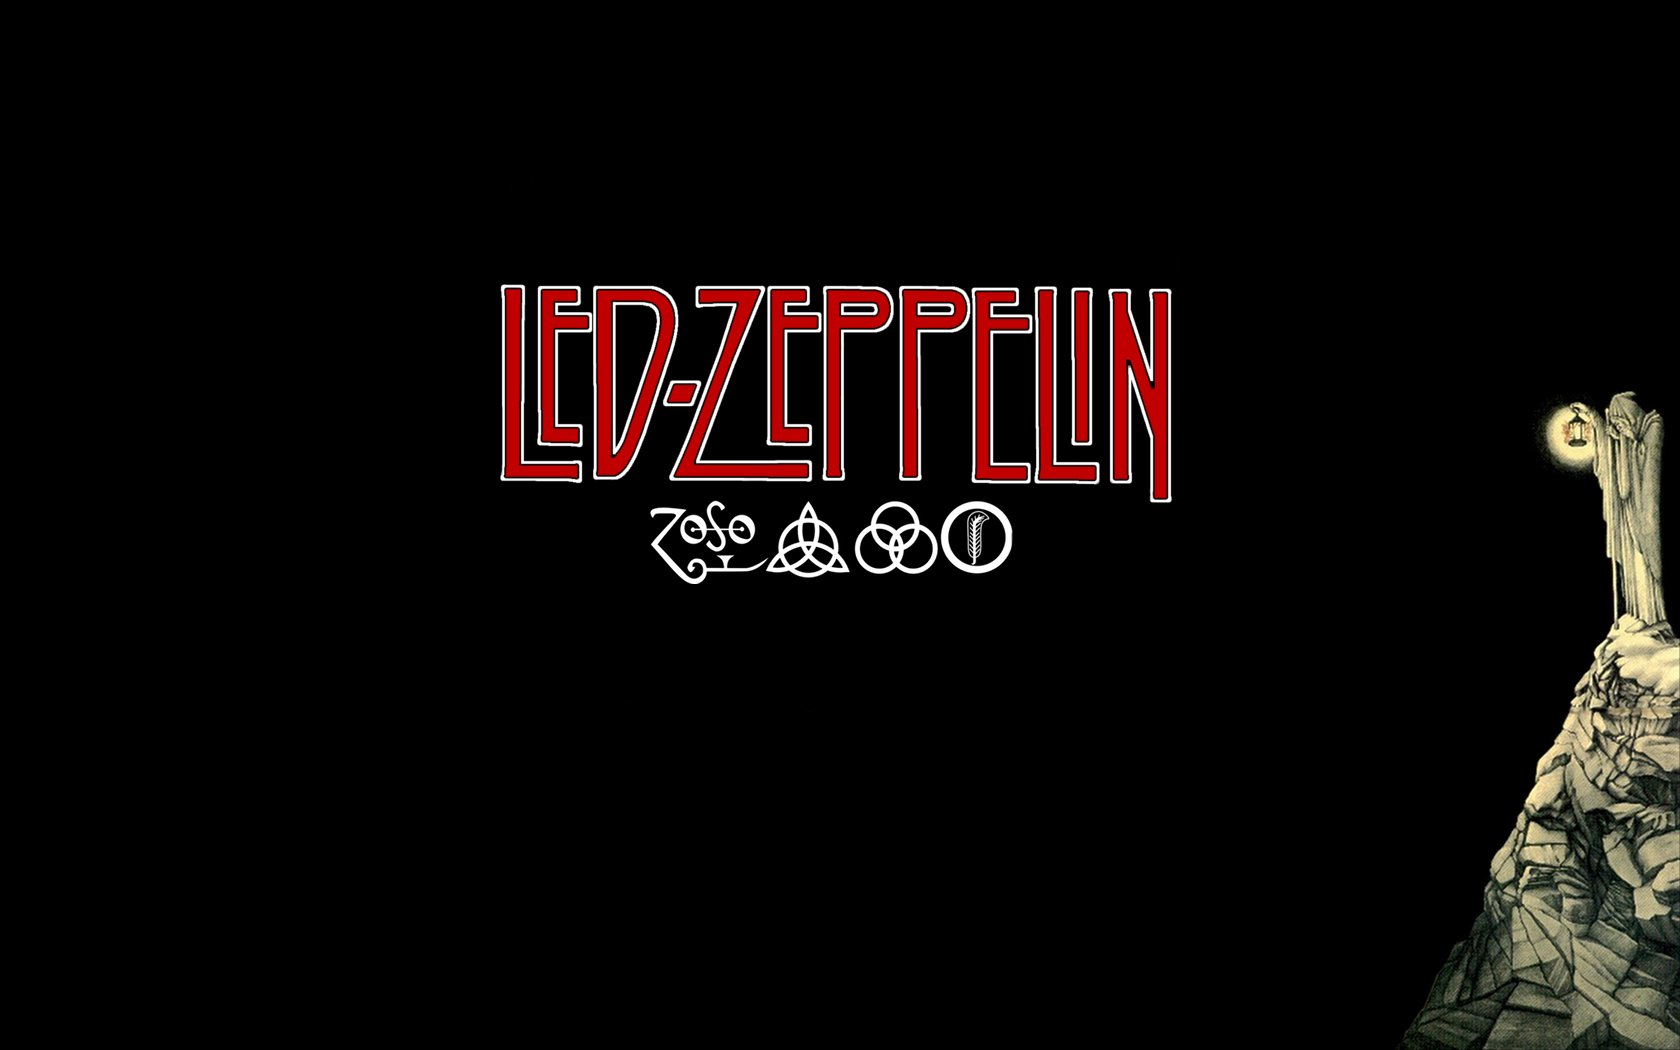 Led Zeppelin hard rock classic groups bands jimmy page robert plant 1680x1050